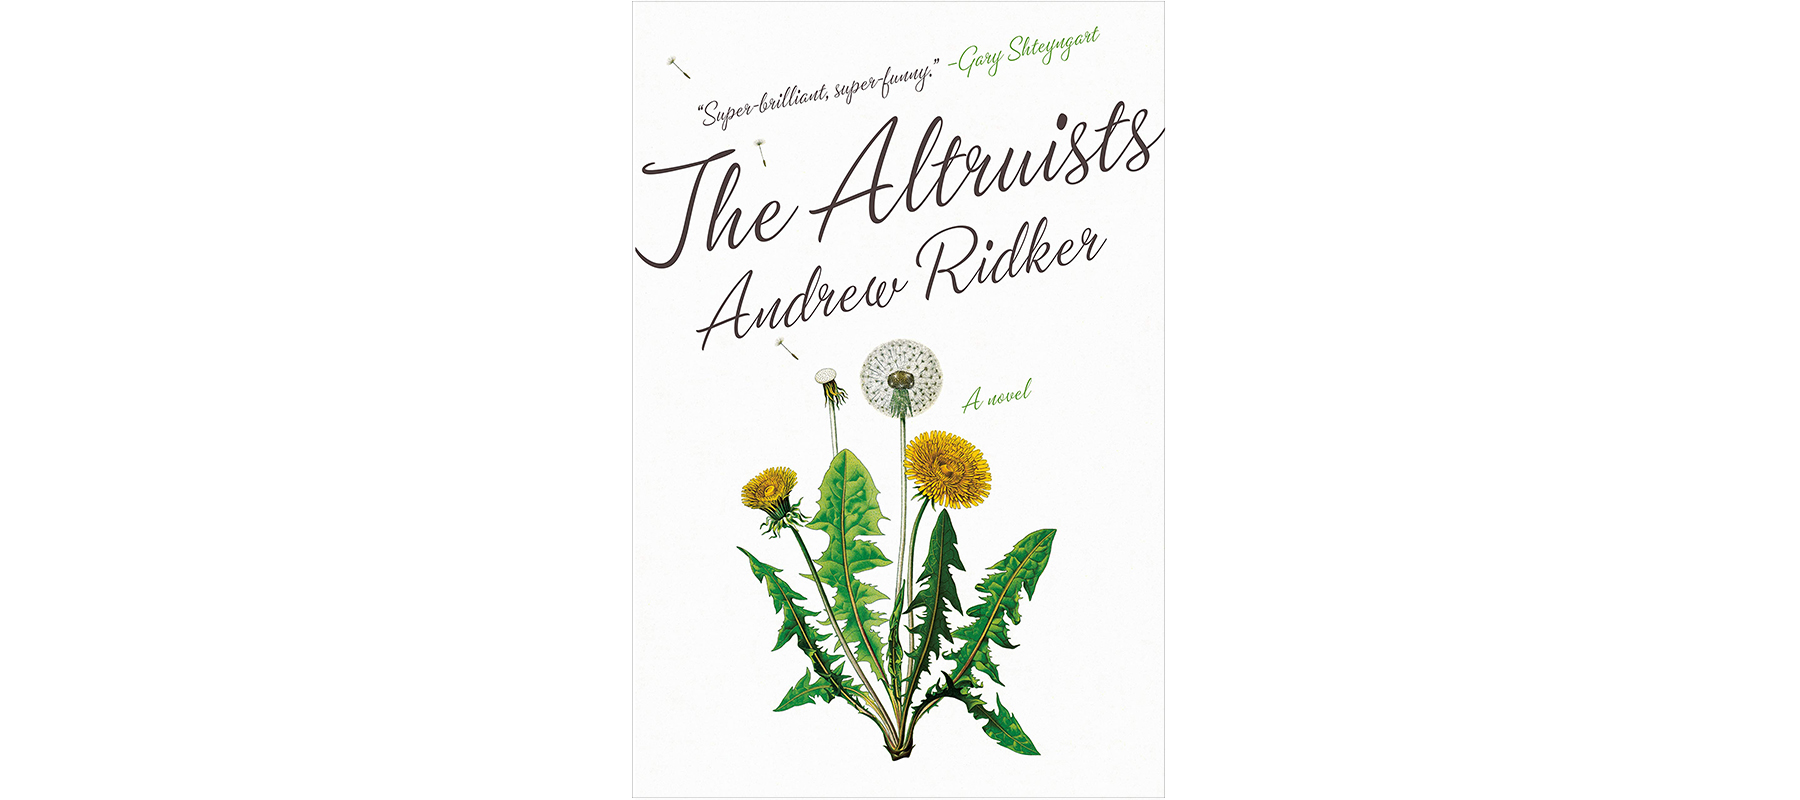 Cover of The Altruists, by Andrew Ridker